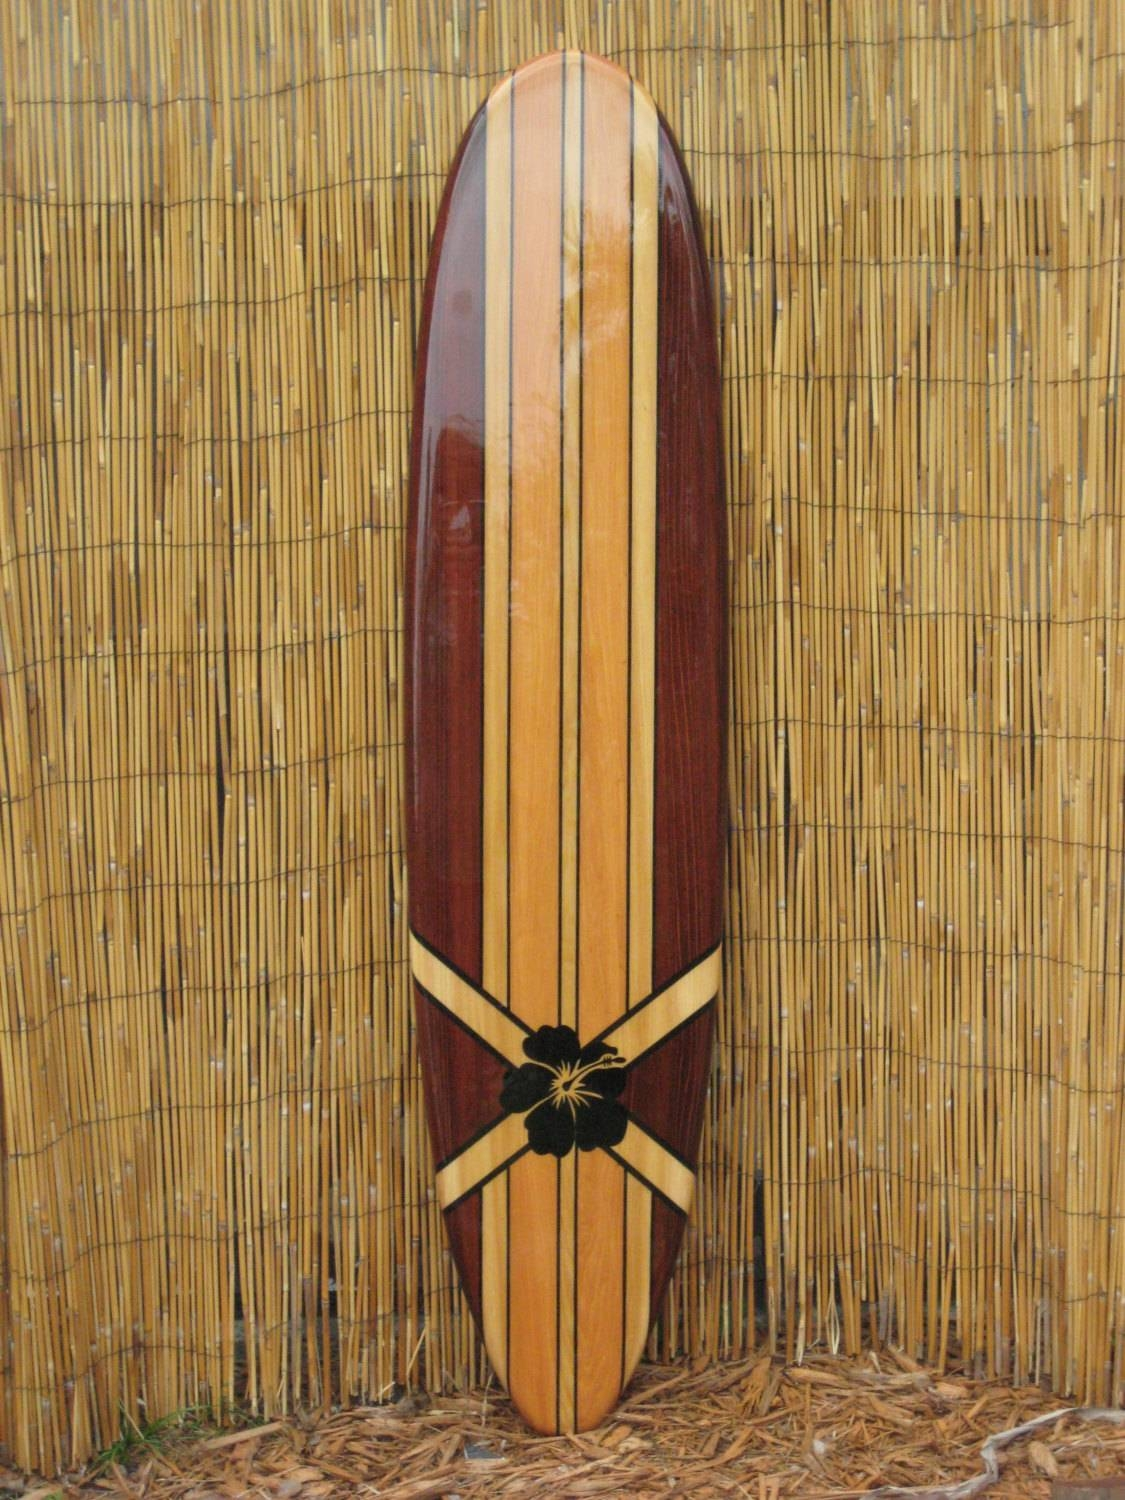 Superbe Wooden Decorative Surfboard Wall Art Wall Hanging Or Beach Throughout Most  Recent Decorative Surfboard Wall Art